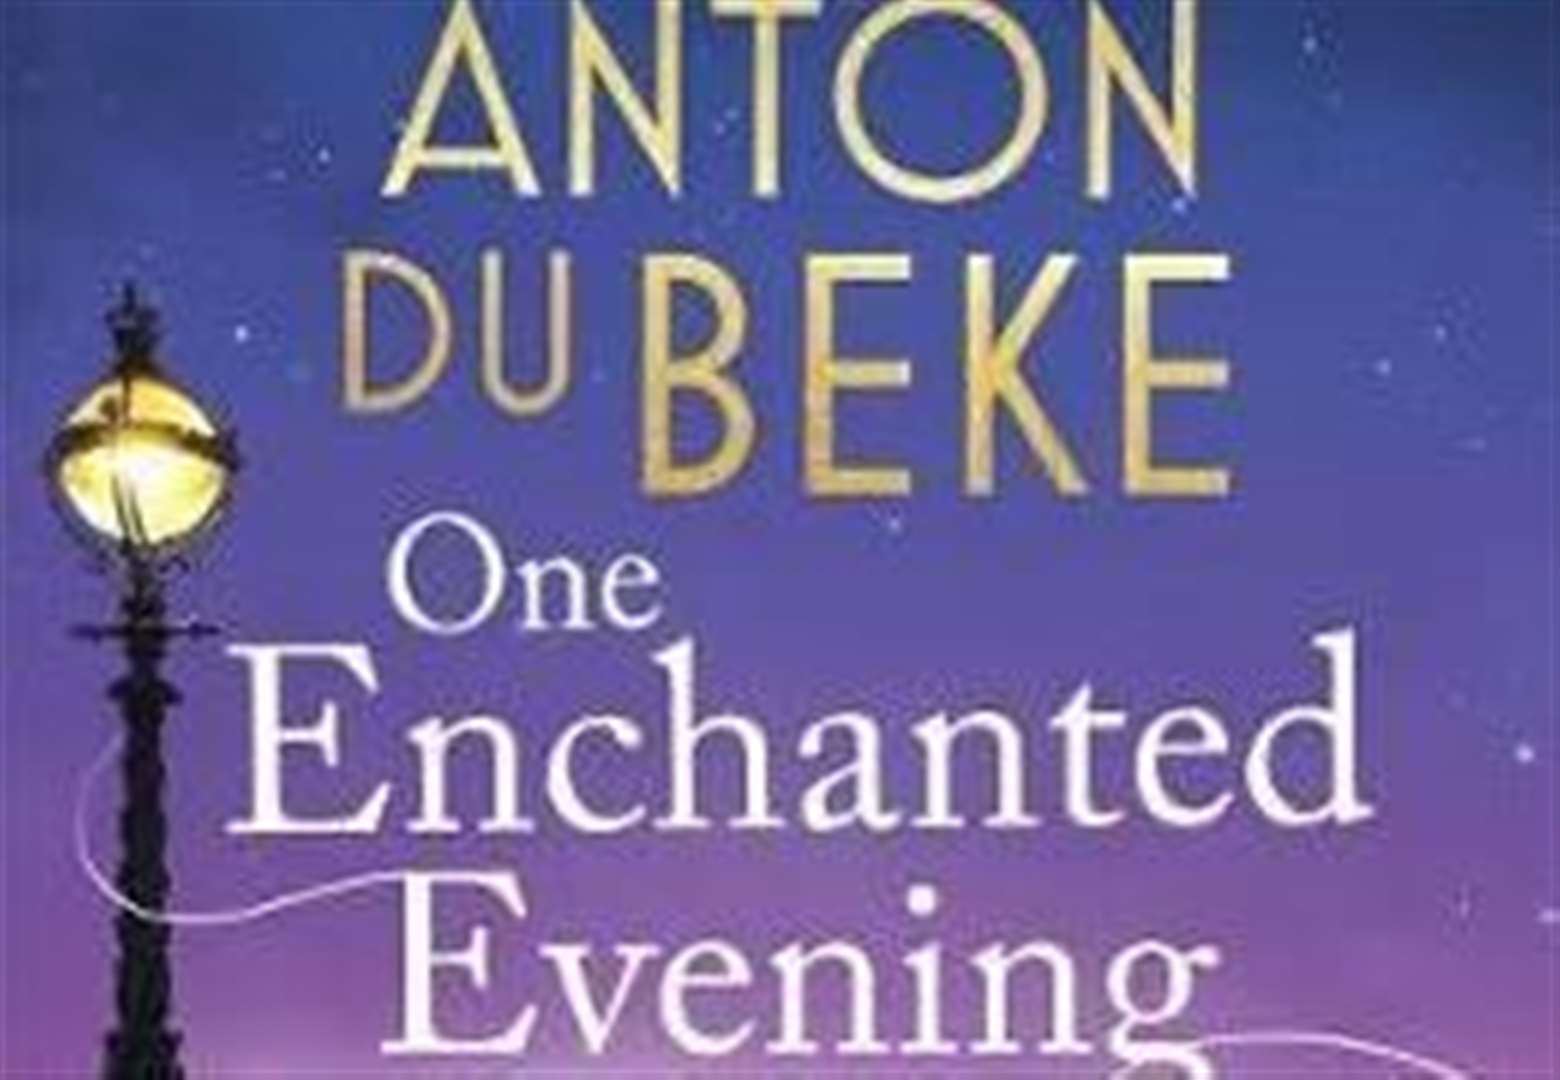 BOOK OF THE WEEK: One Enchanted Evening by Anton Du Beke